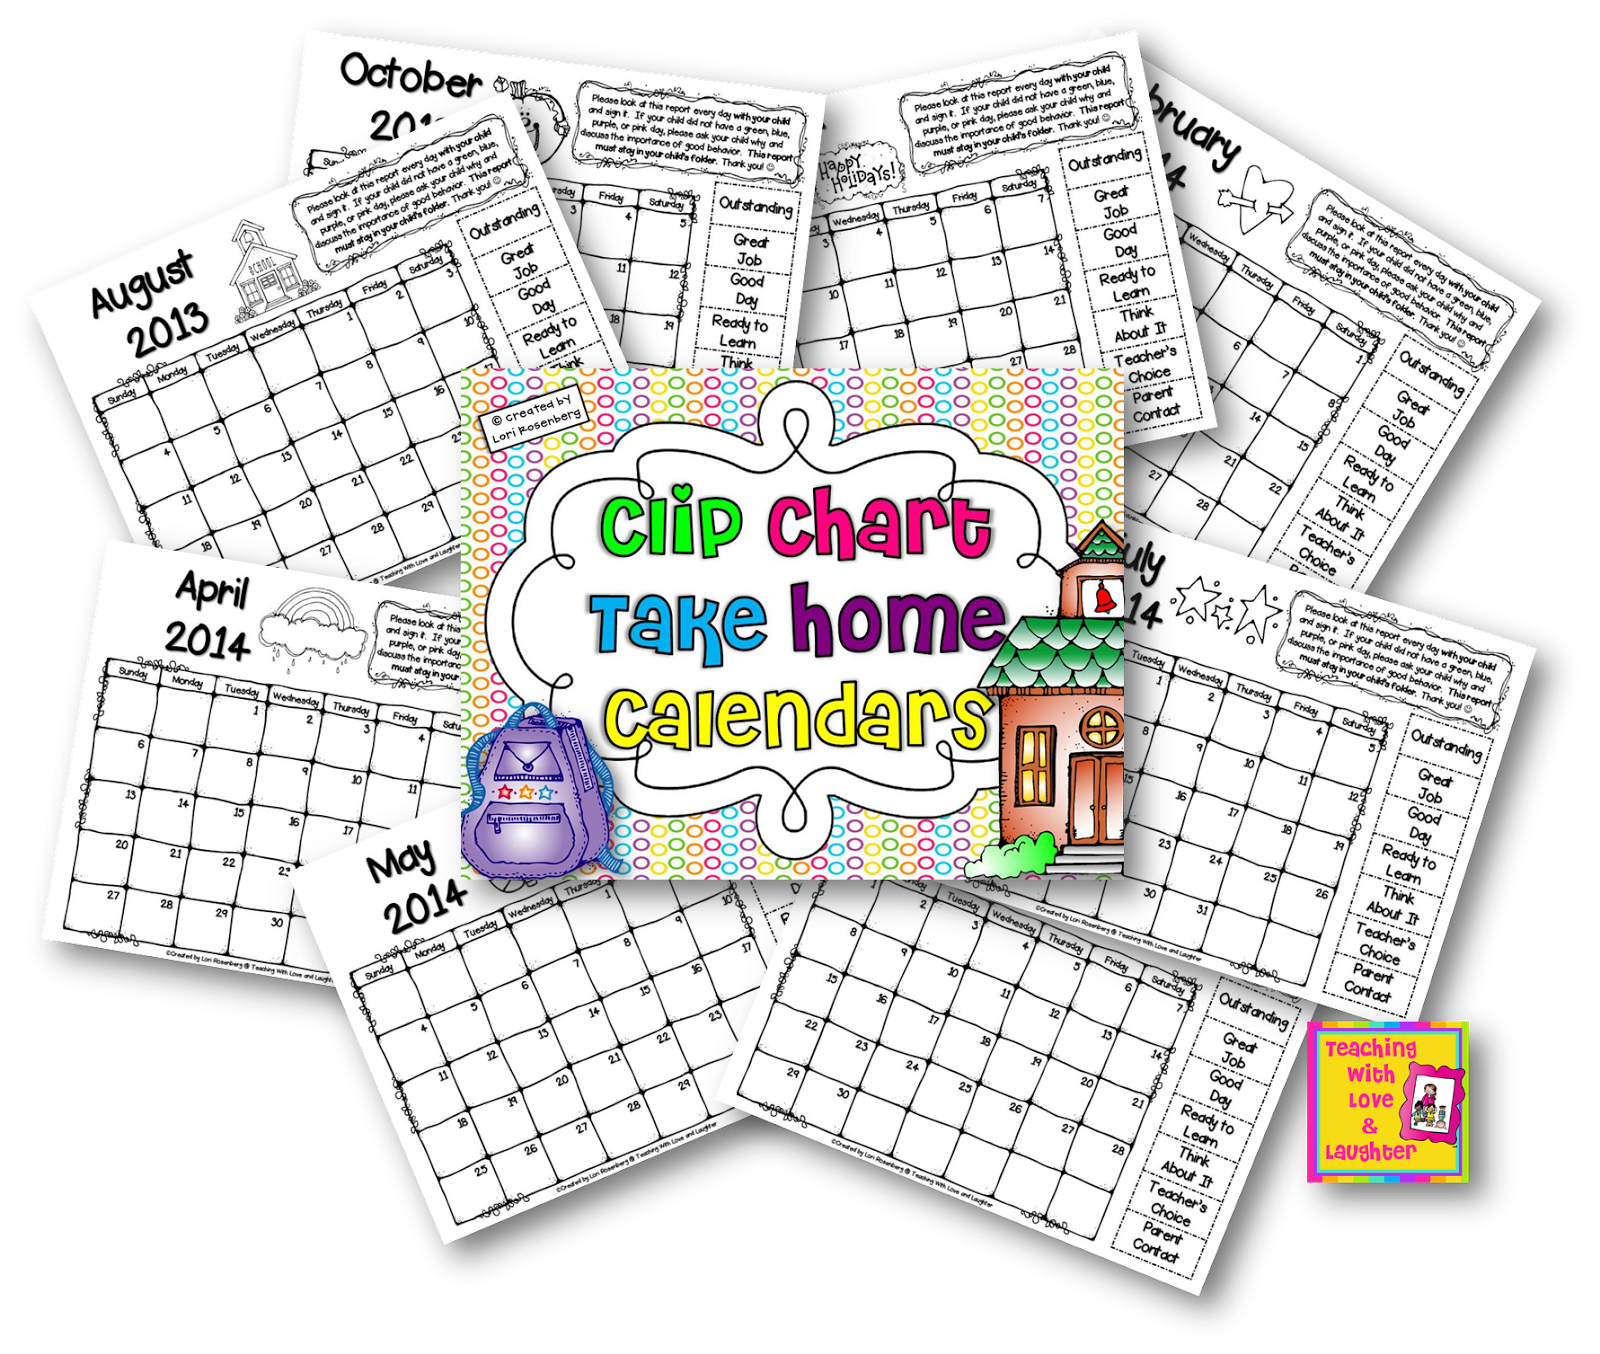 Clip charts calendar. Teaching with love and